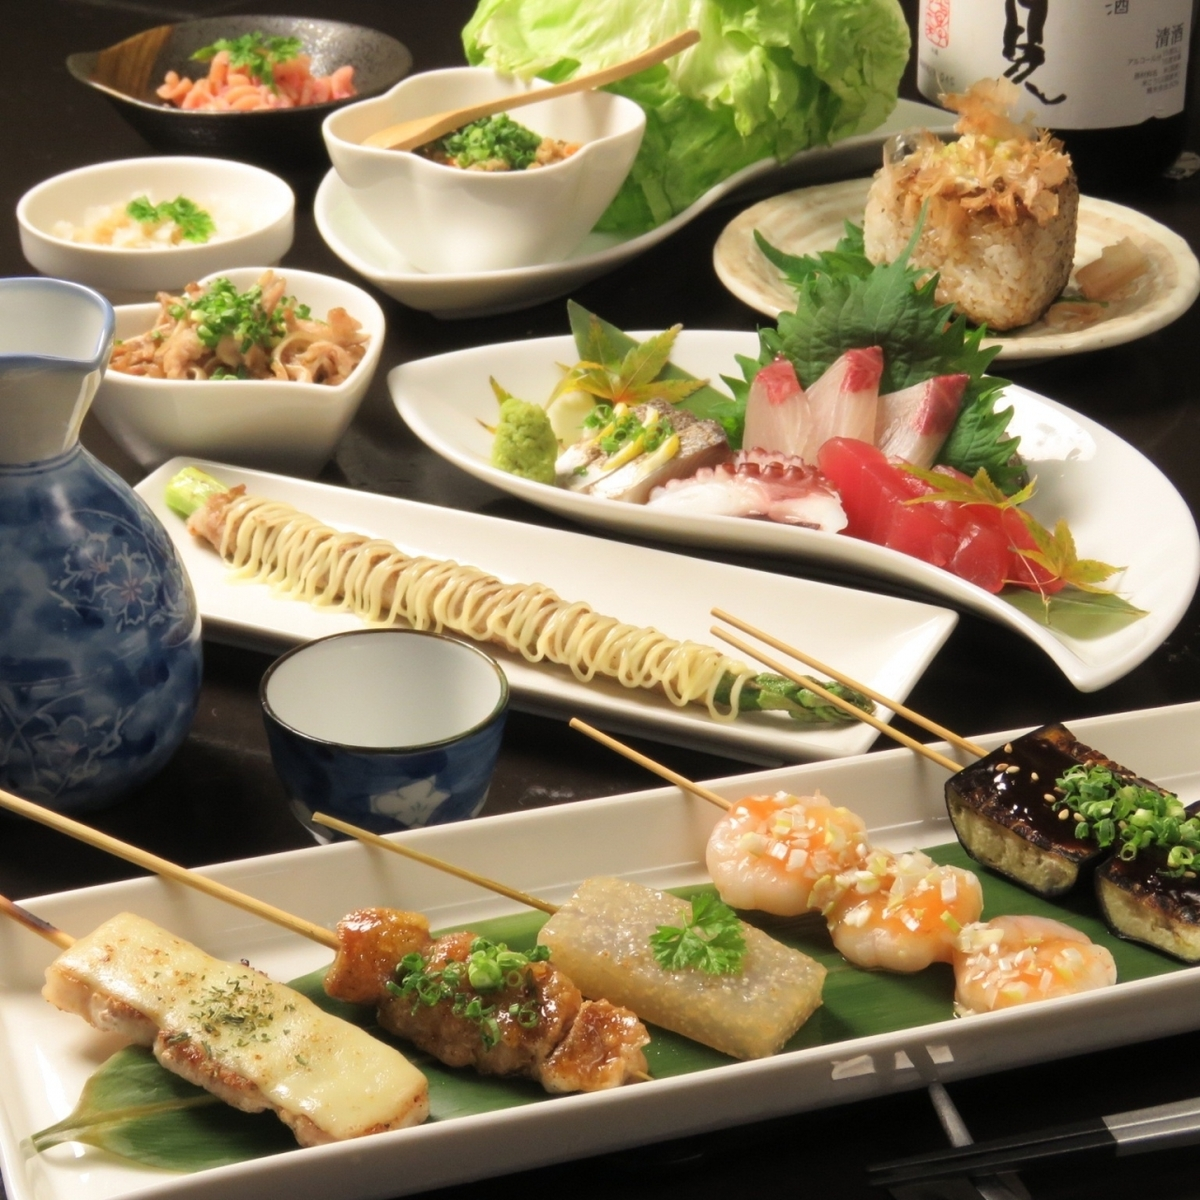 ☆ Healthy ☆ All the teppan dishes use olive oil ♪